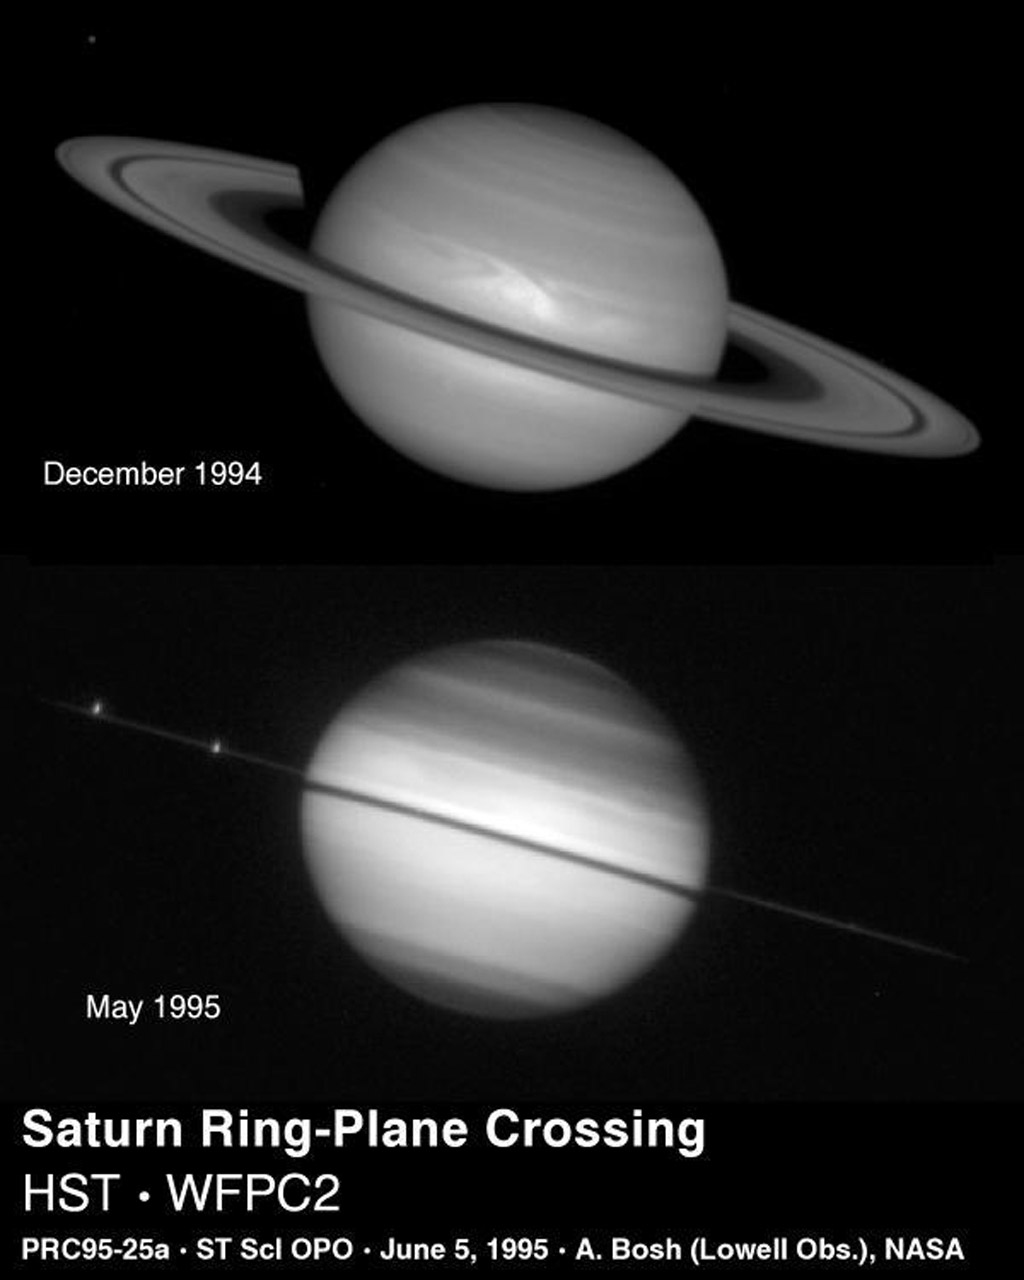 NASA's Hubble Space Telescope captured Saturn on May 22, 1995 as the planet's magnificent ring system turned edge-on. This ring-plane crossing occurs approximately every 15 years when the Earth passes through Saturn's ring plane.